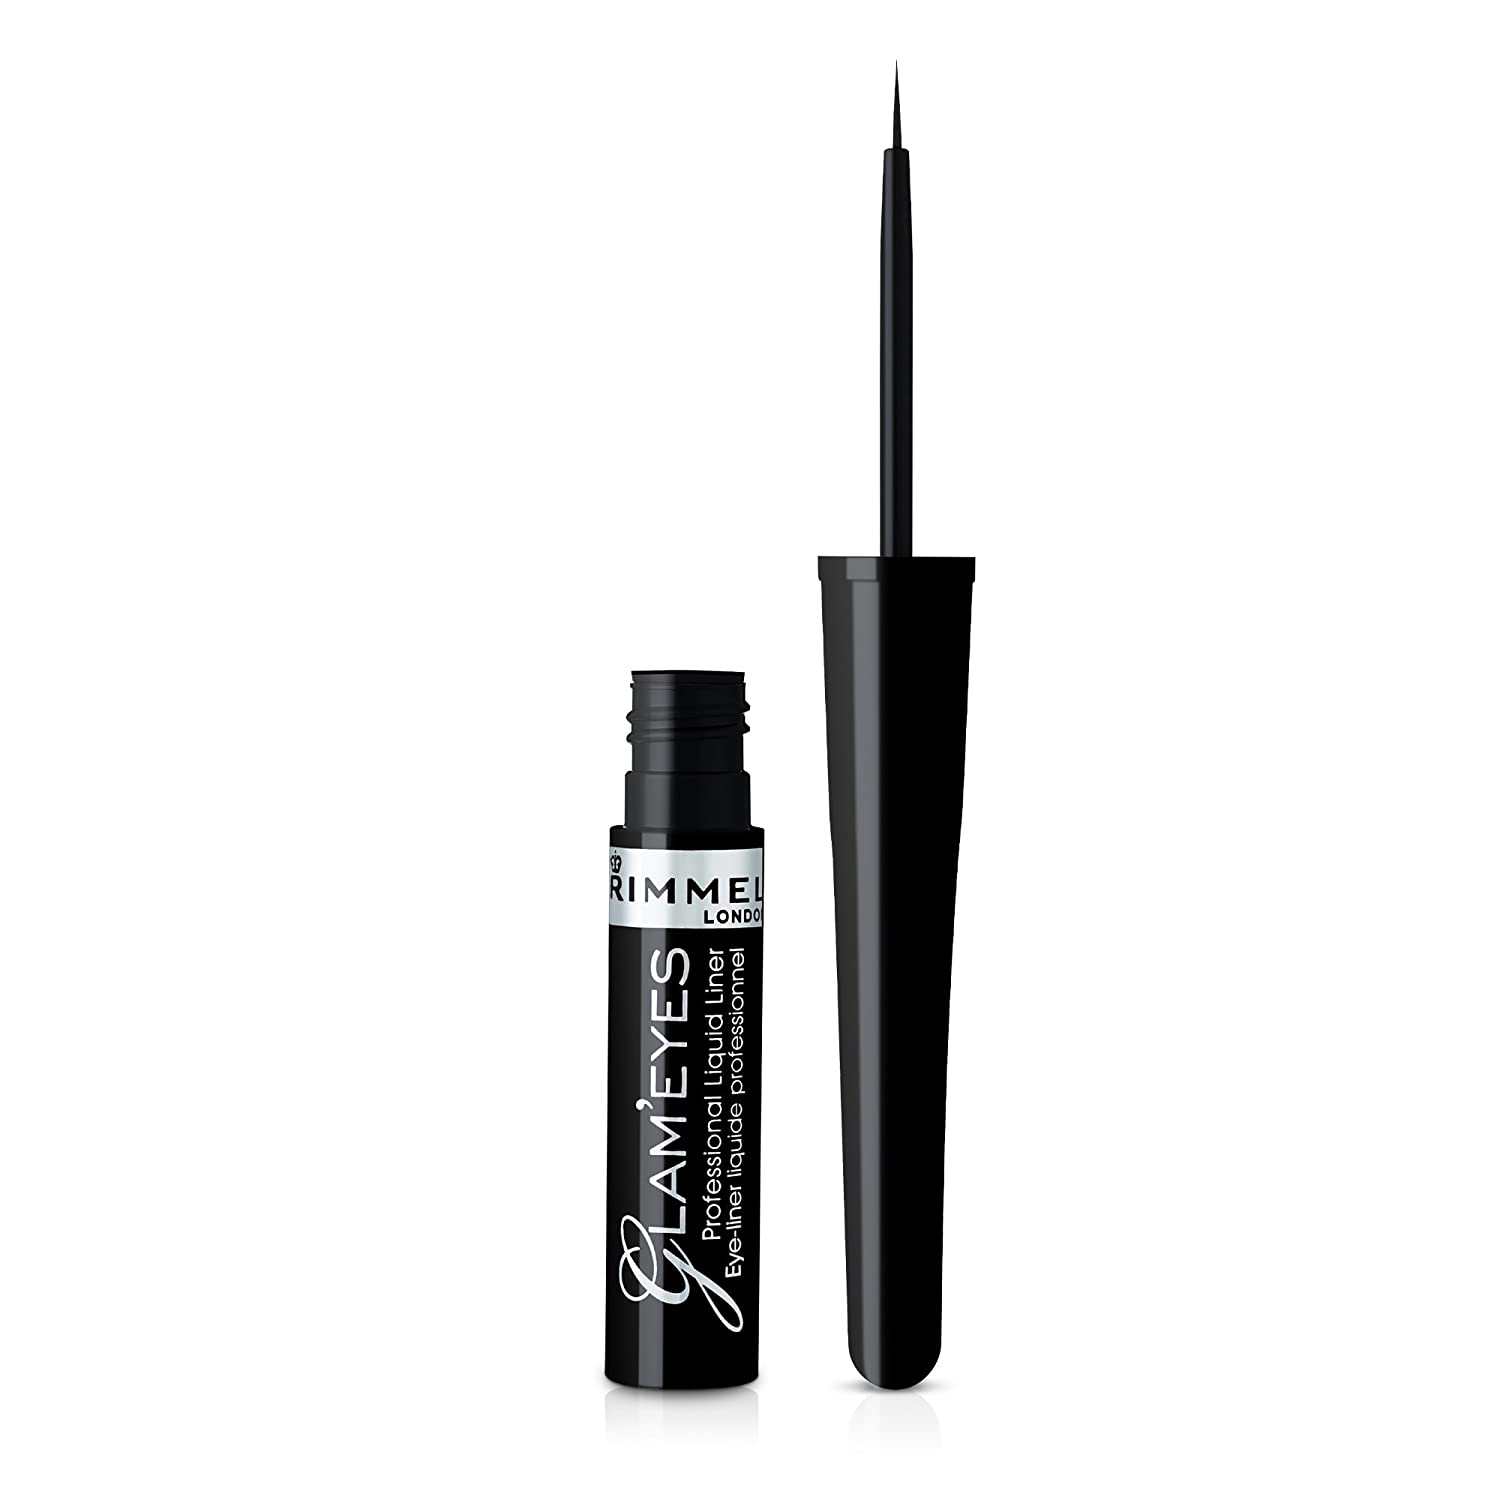 Rimmel Glam Eyes Liquid Eyeliner